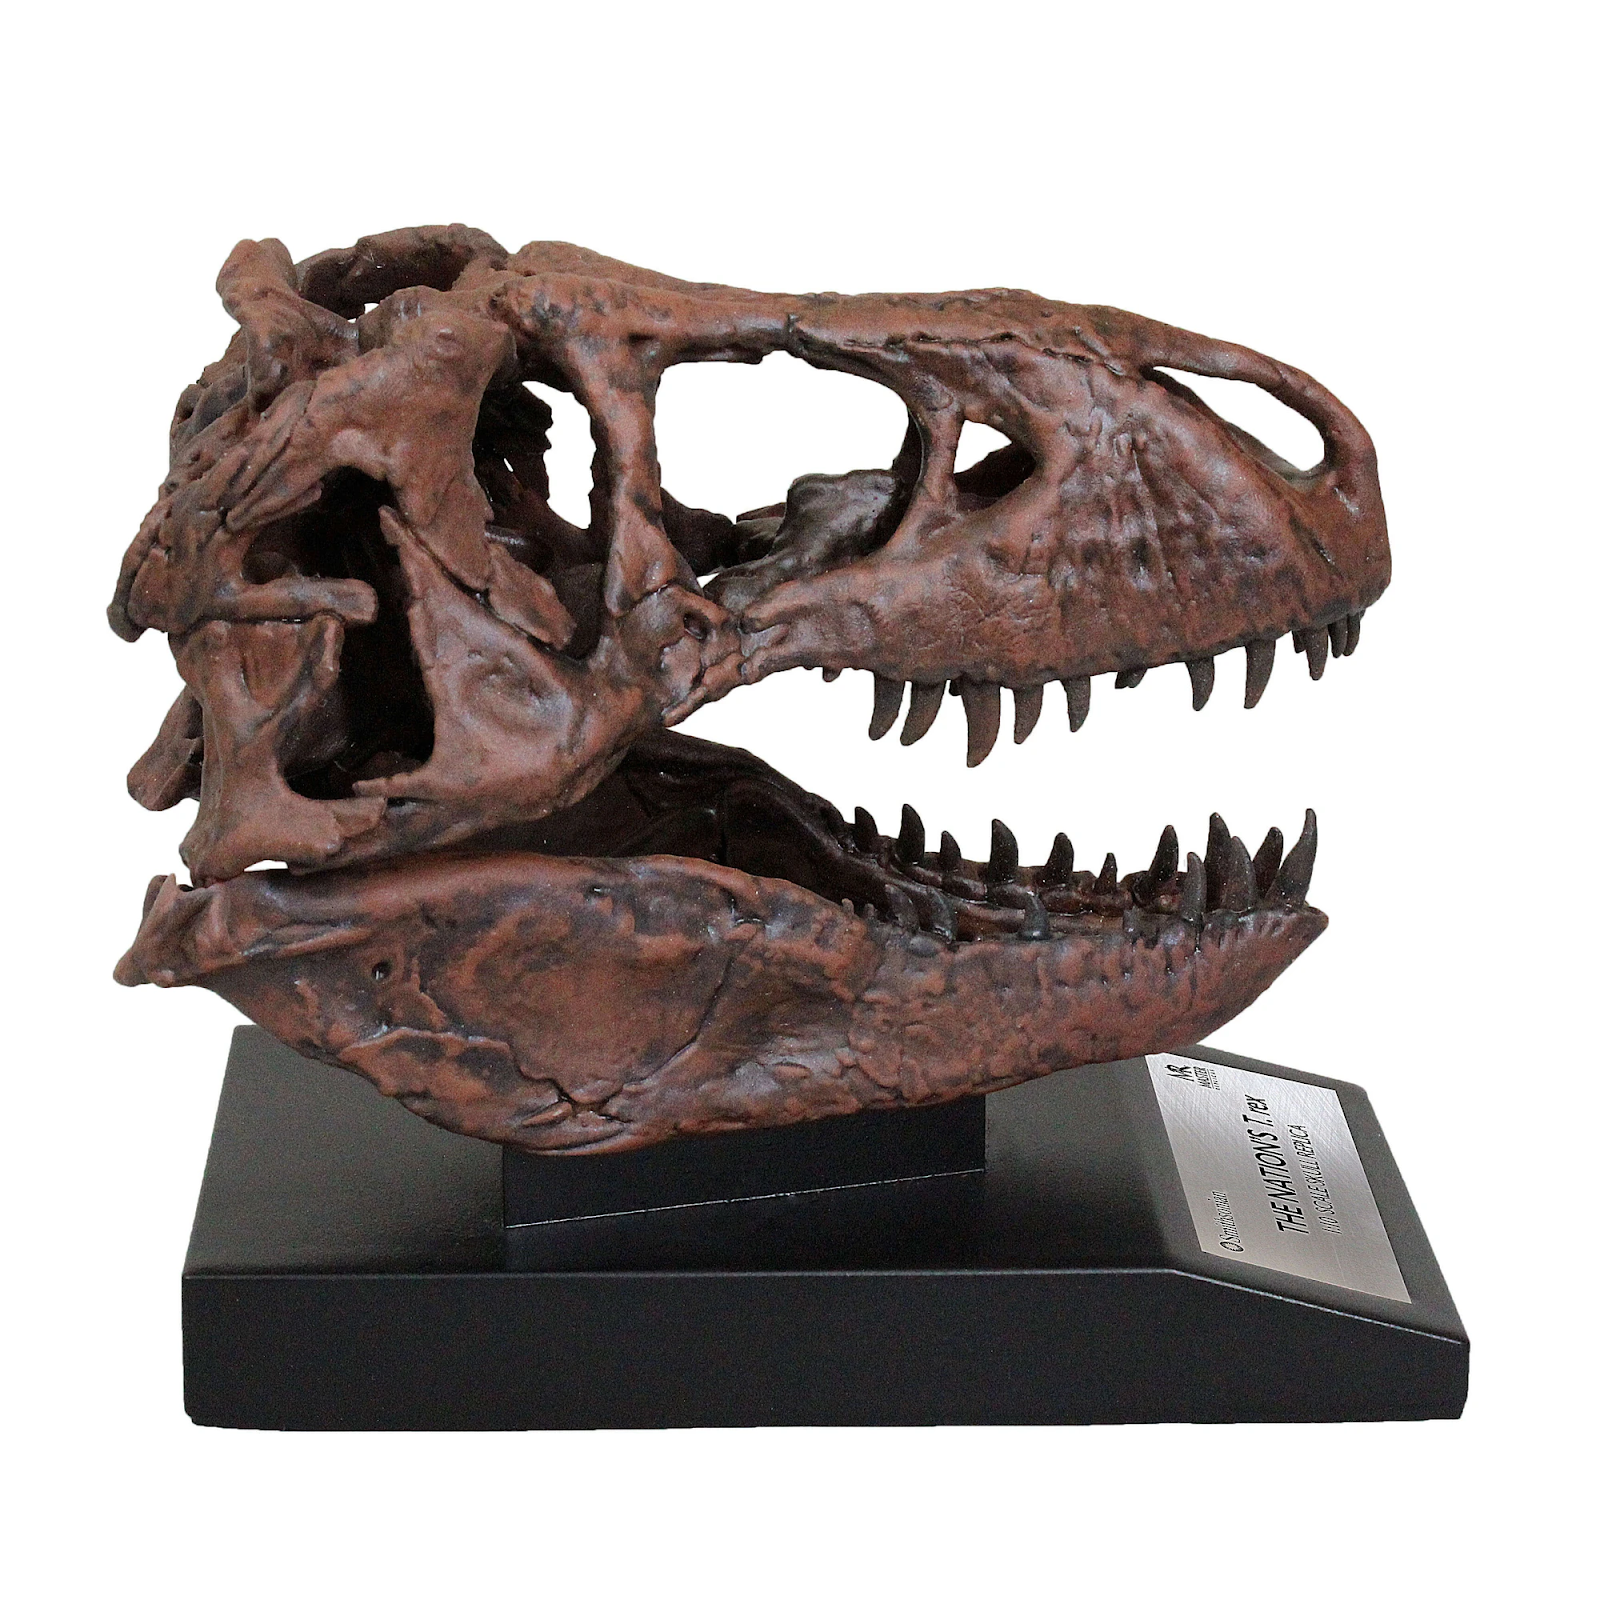 10th Scale Smithsonian Nation's T. rex Skull Fossil Replicas Now in Stock